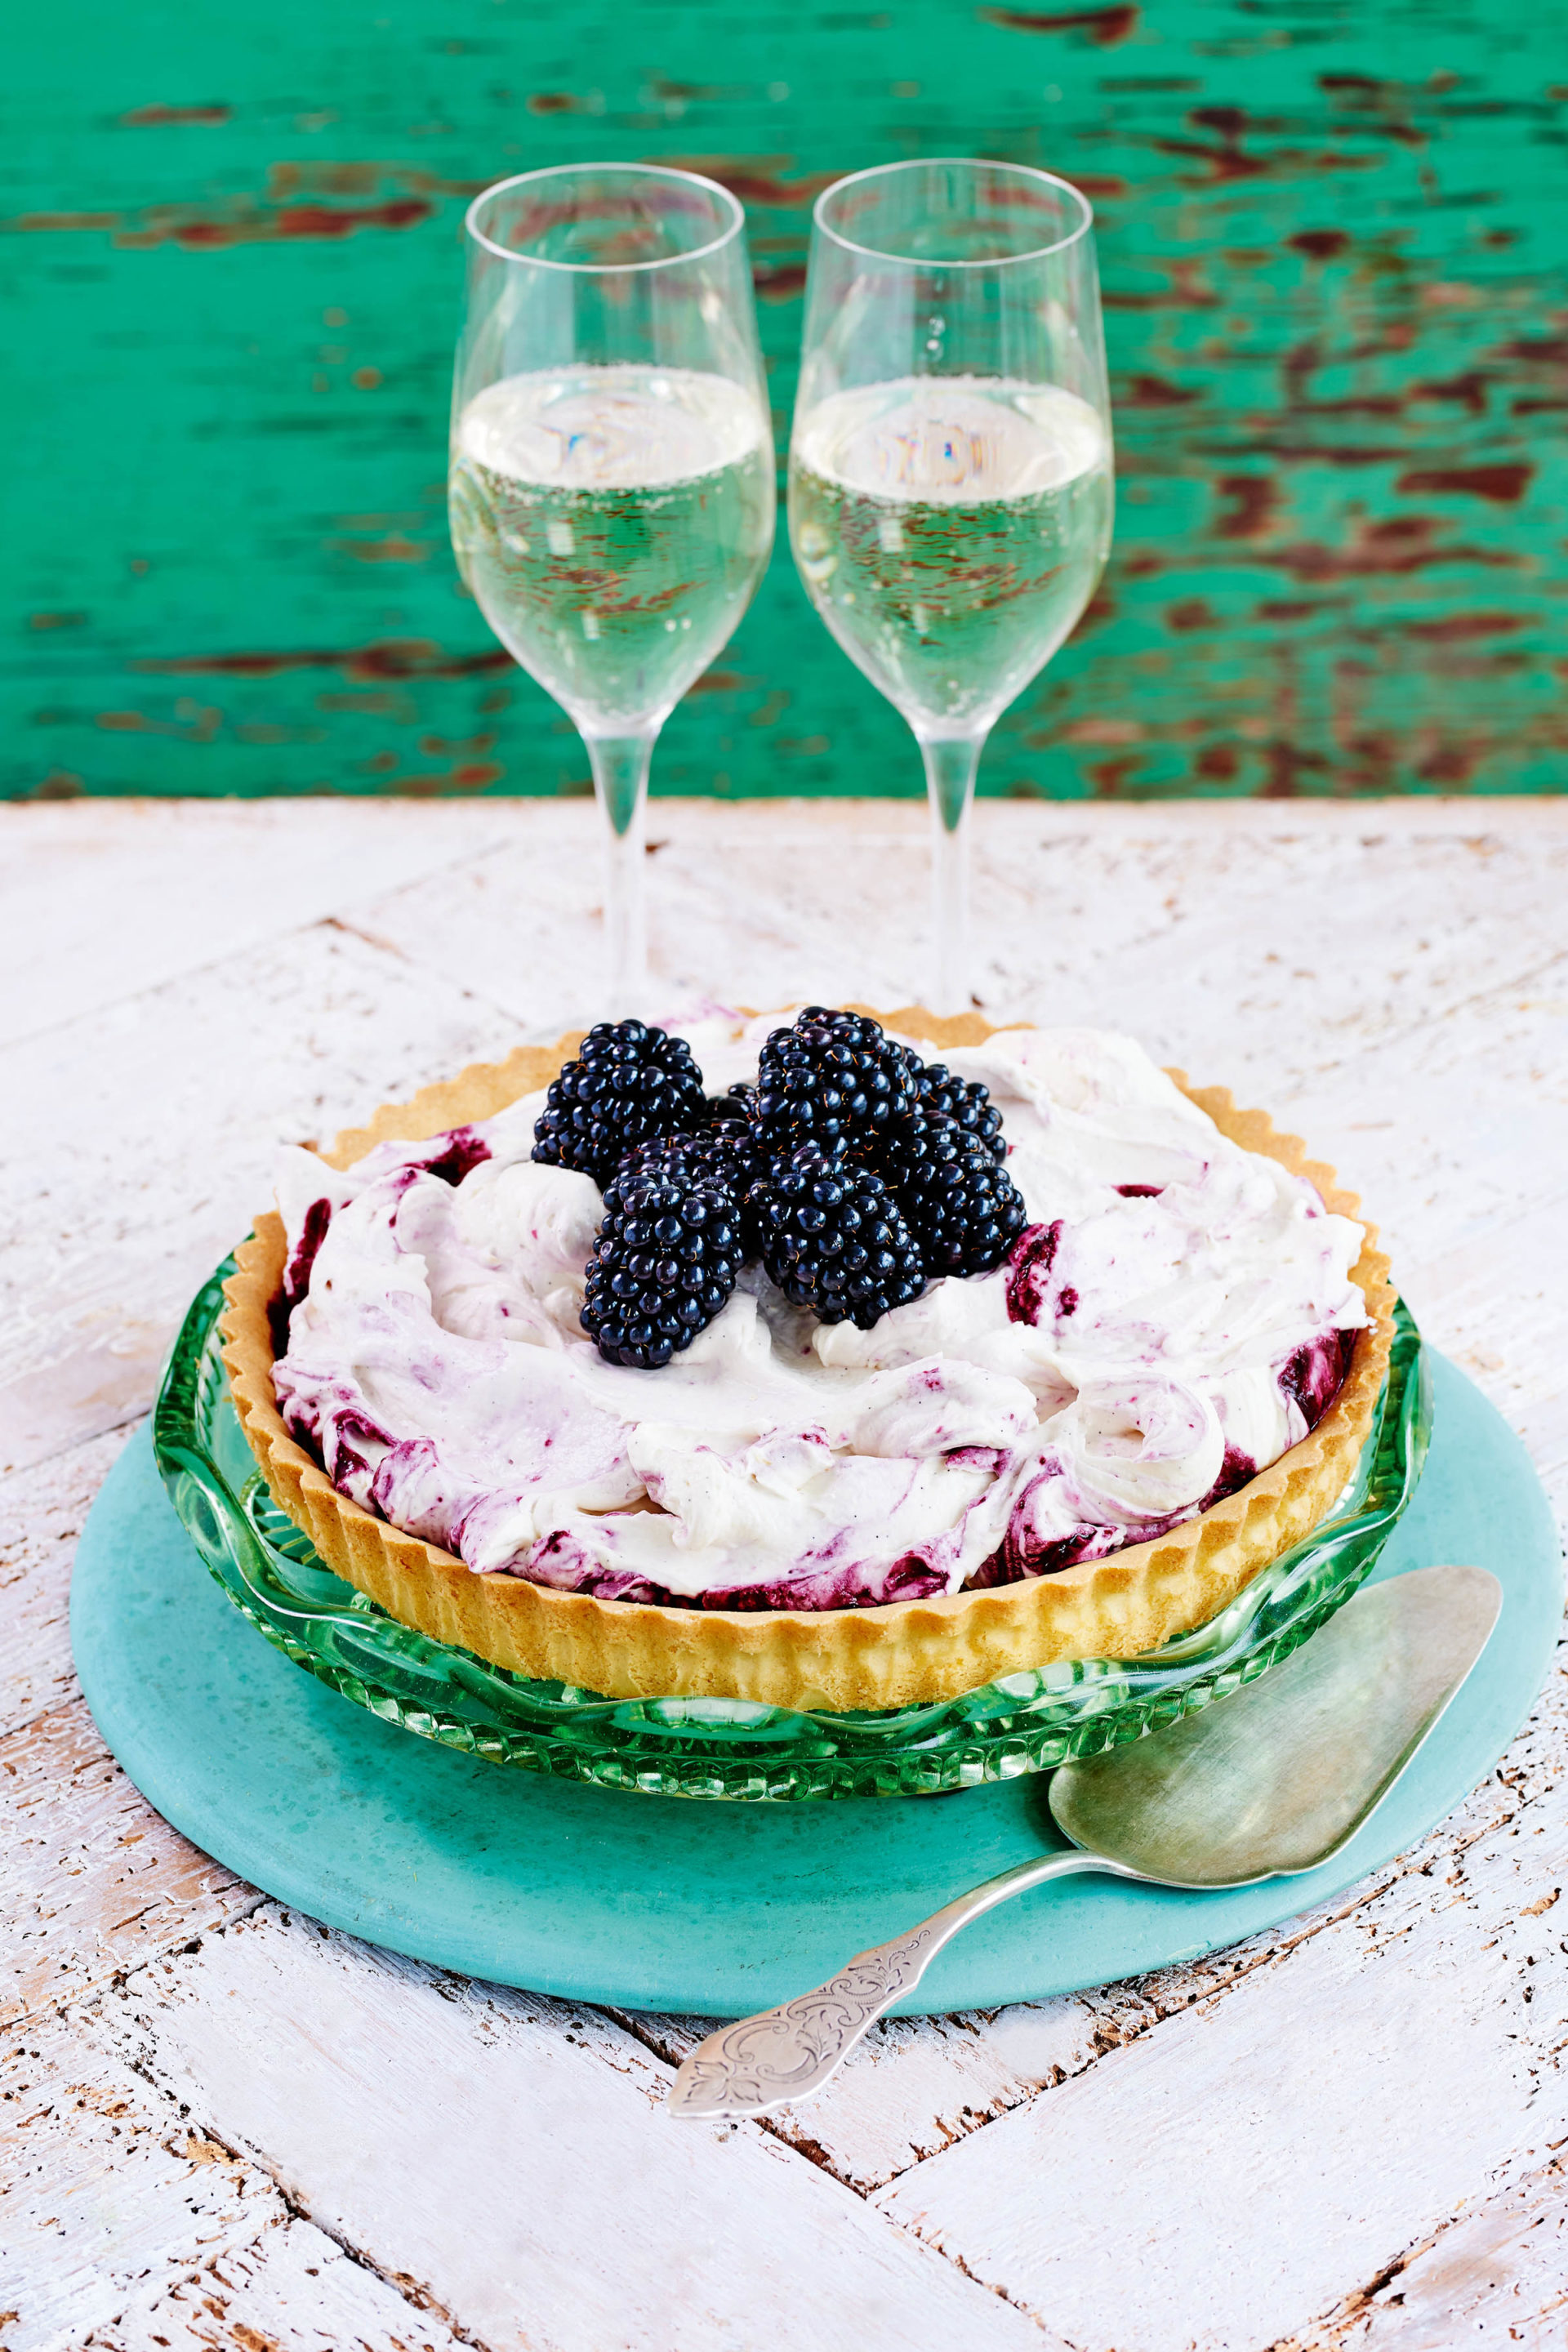 Blackberry fool cheesecake